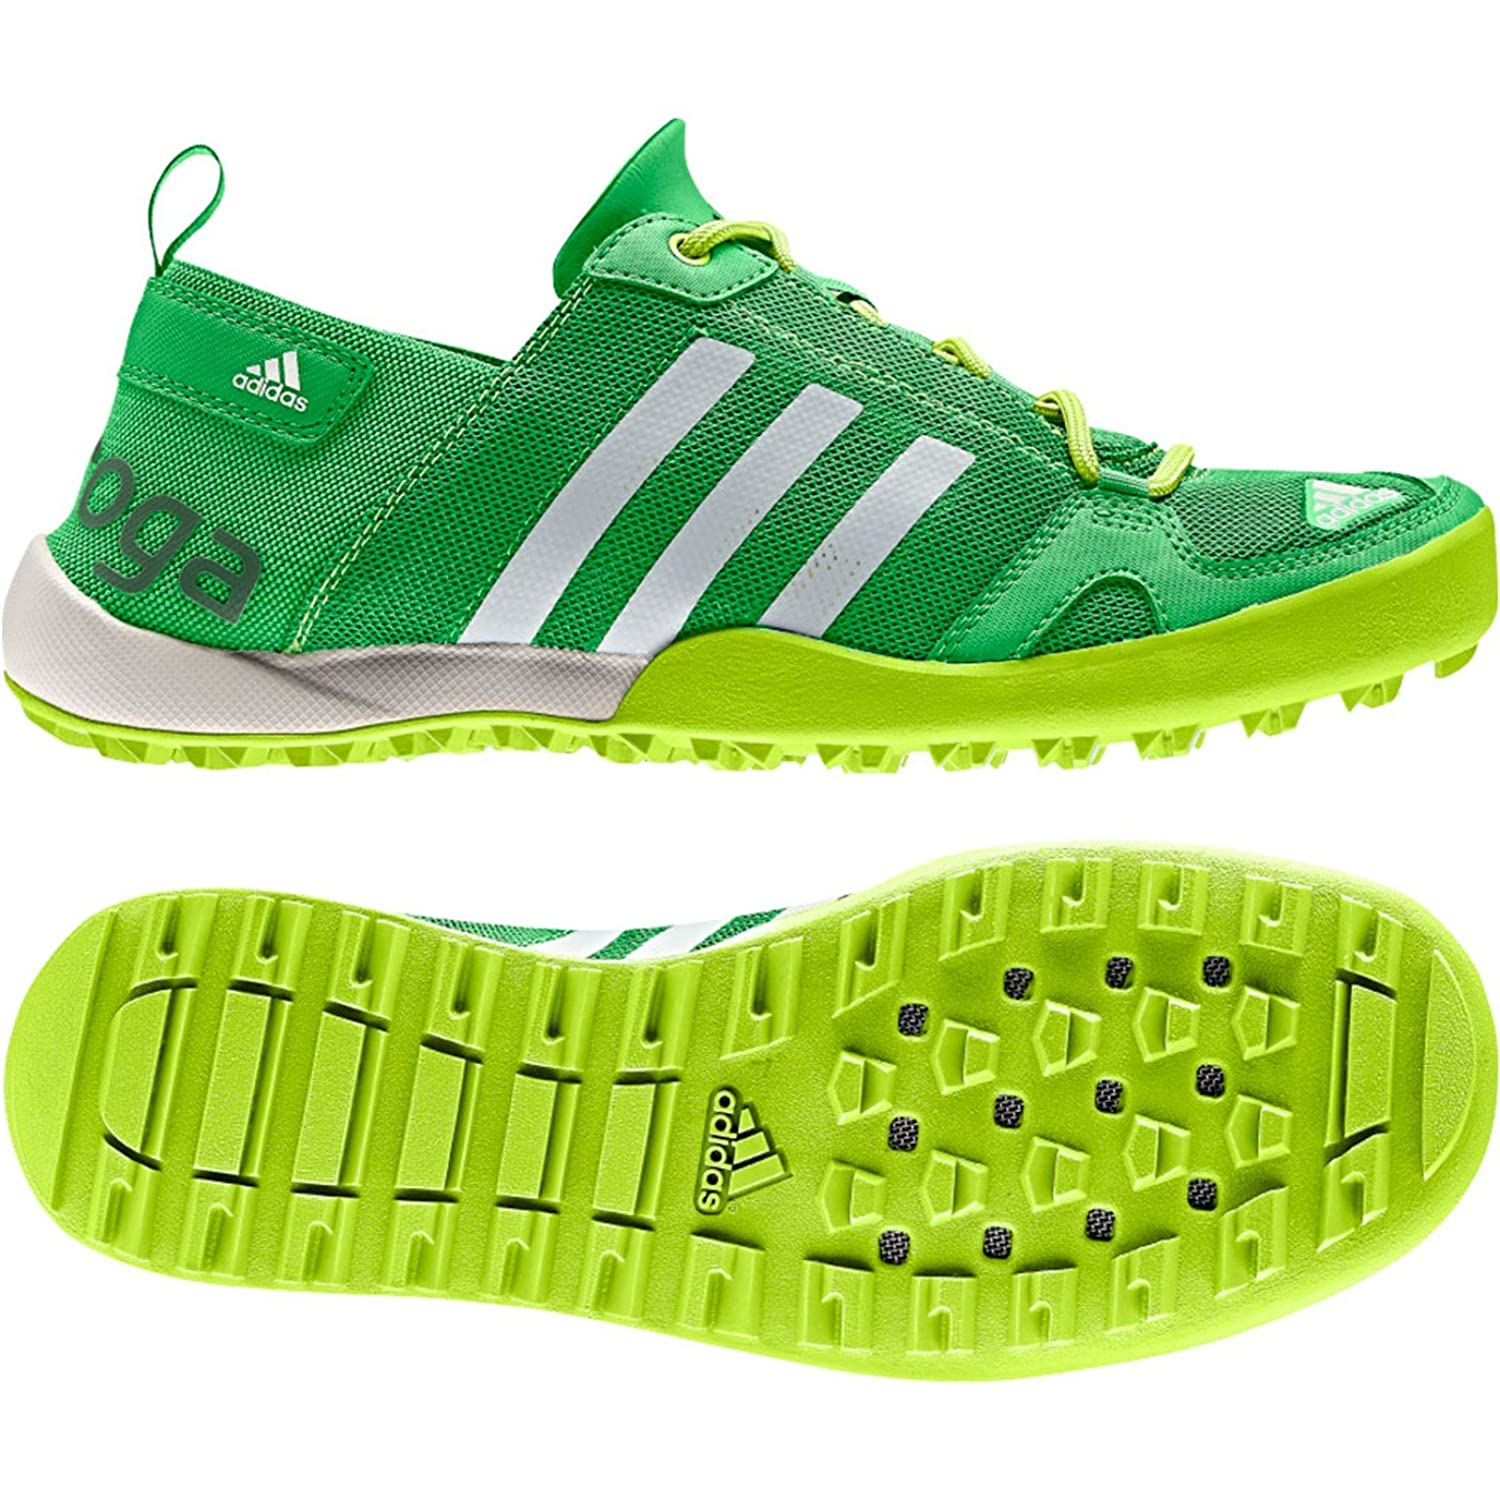 8c1a124ff5bd3 adidas D66328 Men s CLIMACOOL DAROGA TWO 13 Vivid Green Chalk Solar Slime  Athletic Shoes 9.5  UK SIZE 8.5  Amazon.co.uk  Shoes   Bags